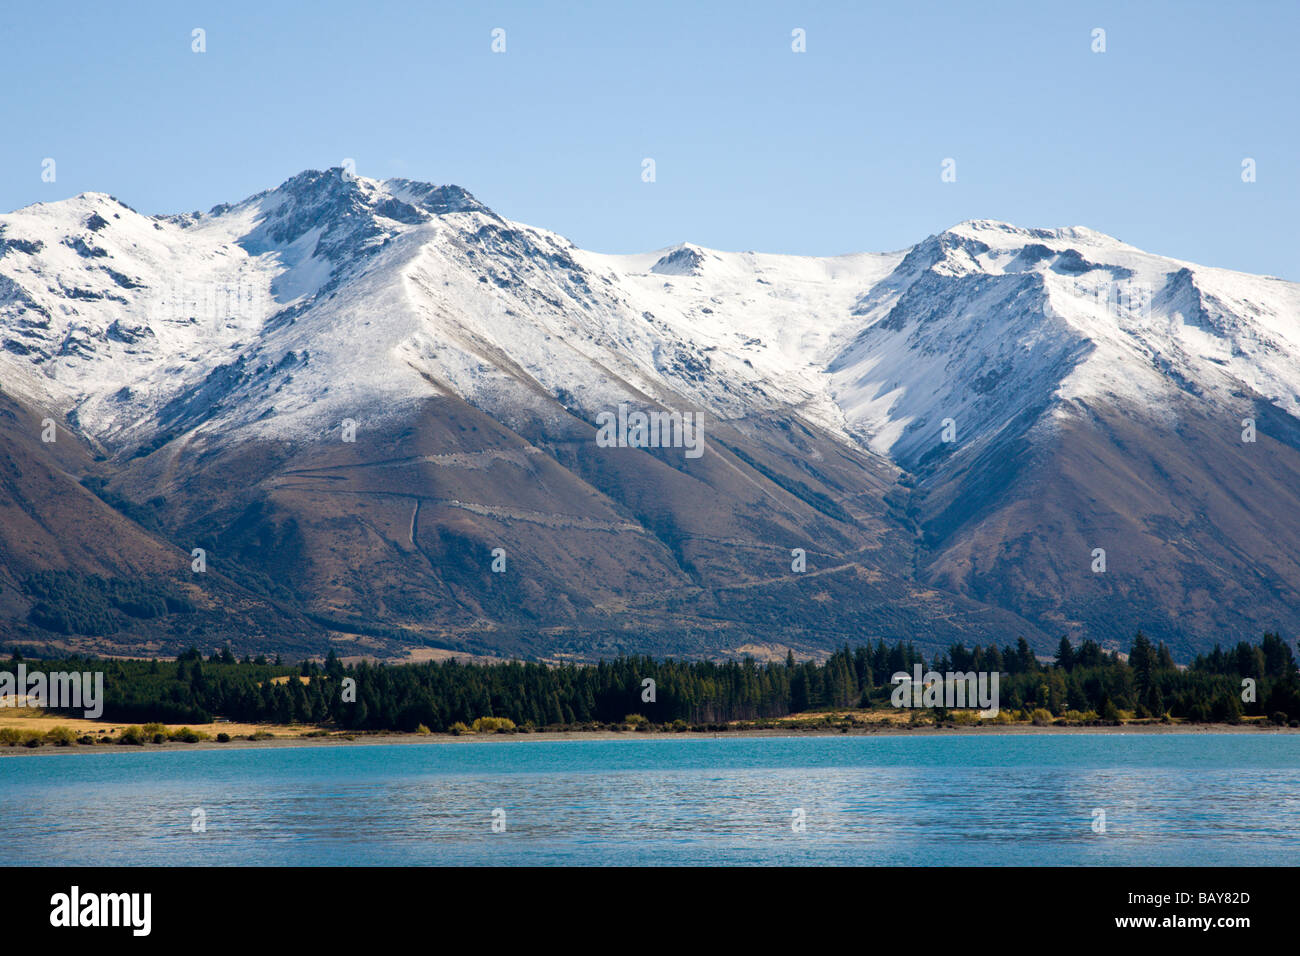 Snow capped mountain and Lake Ohau South Island New Zealand - Stock Image